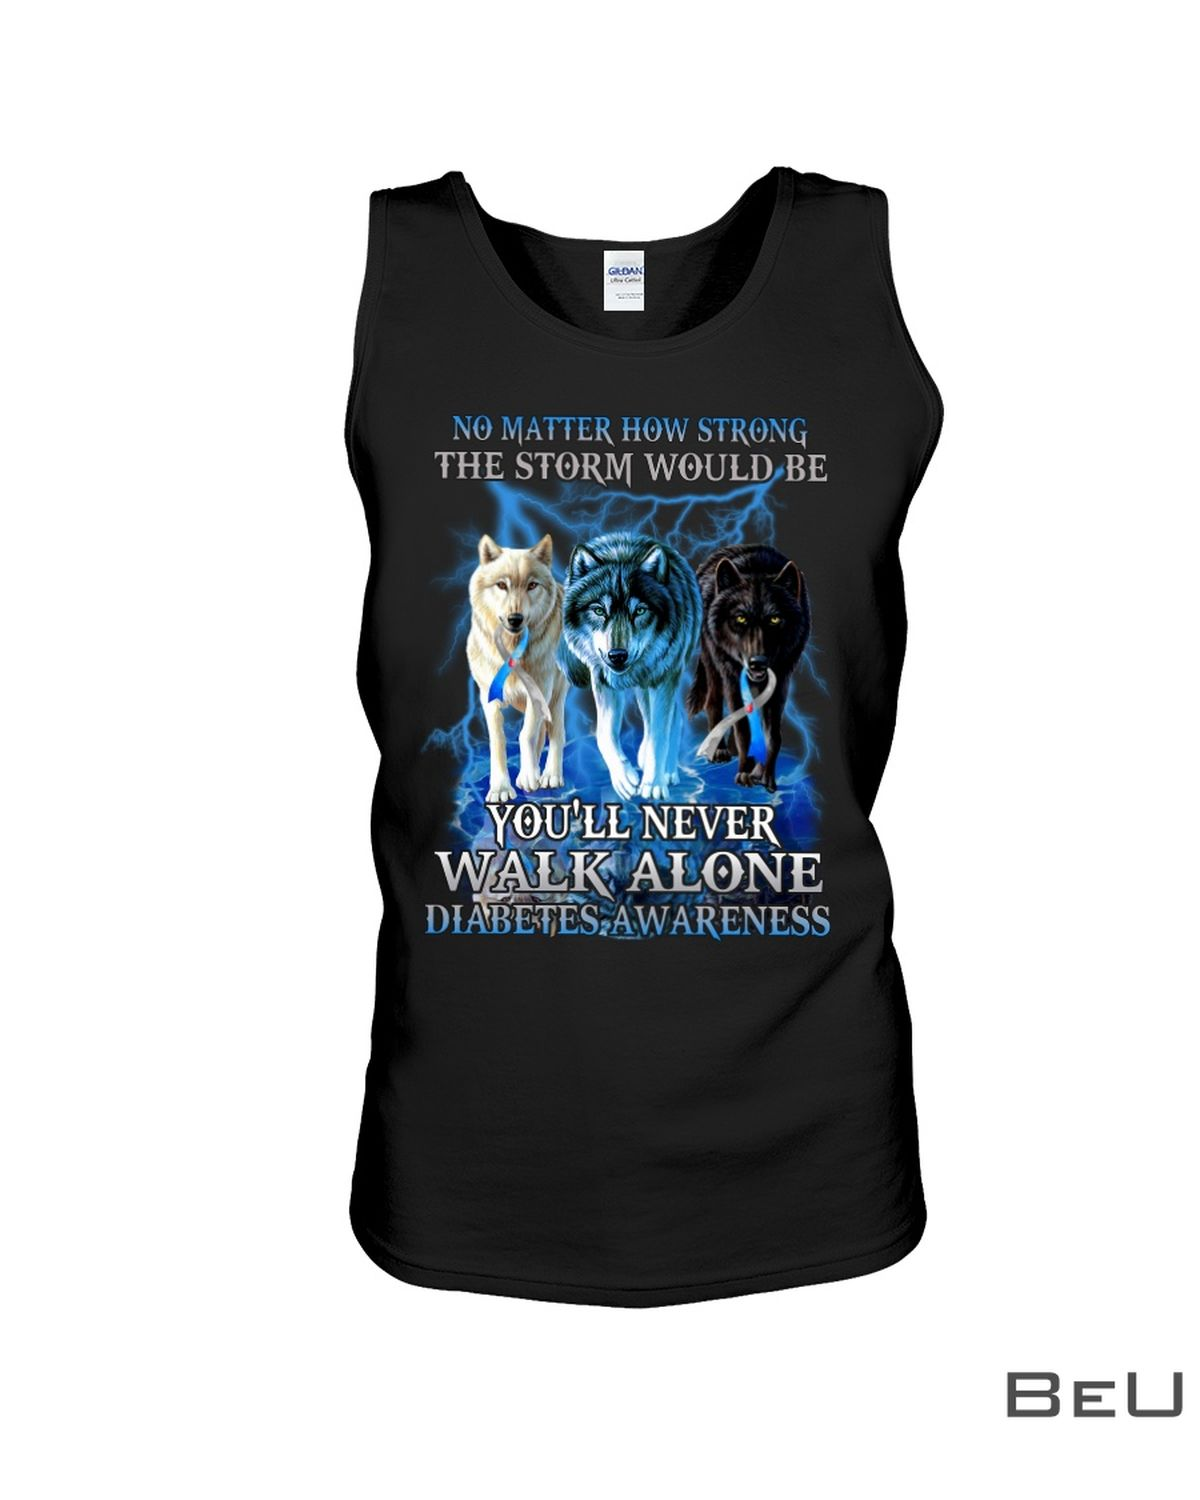 No Matter How Strong The Storm Would Be You'll Never Walk Alone Diabetes Awareness Shirtc